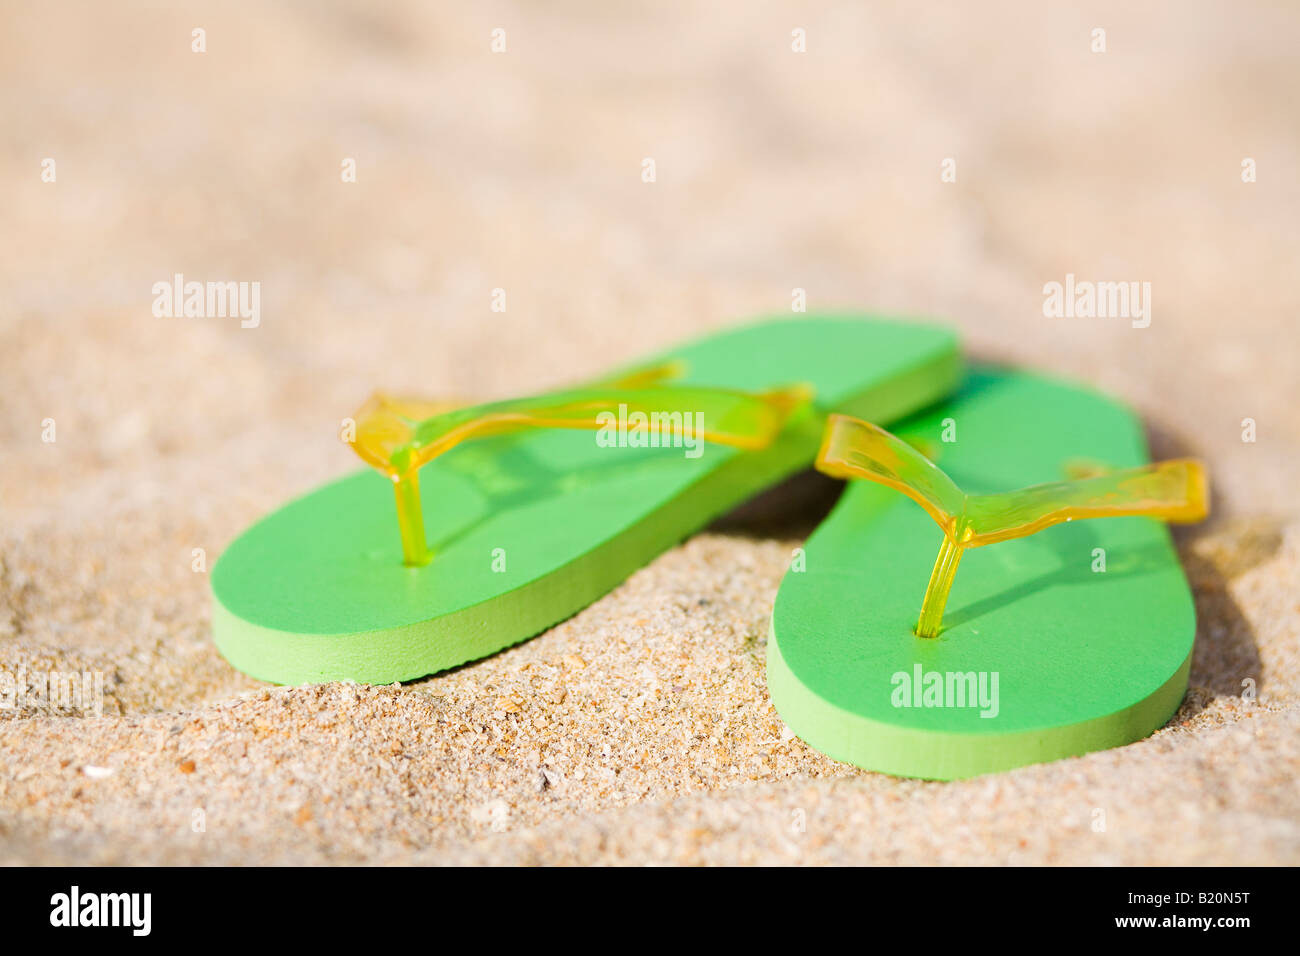 Paire de tongs vert sur la plage. Photo Stock